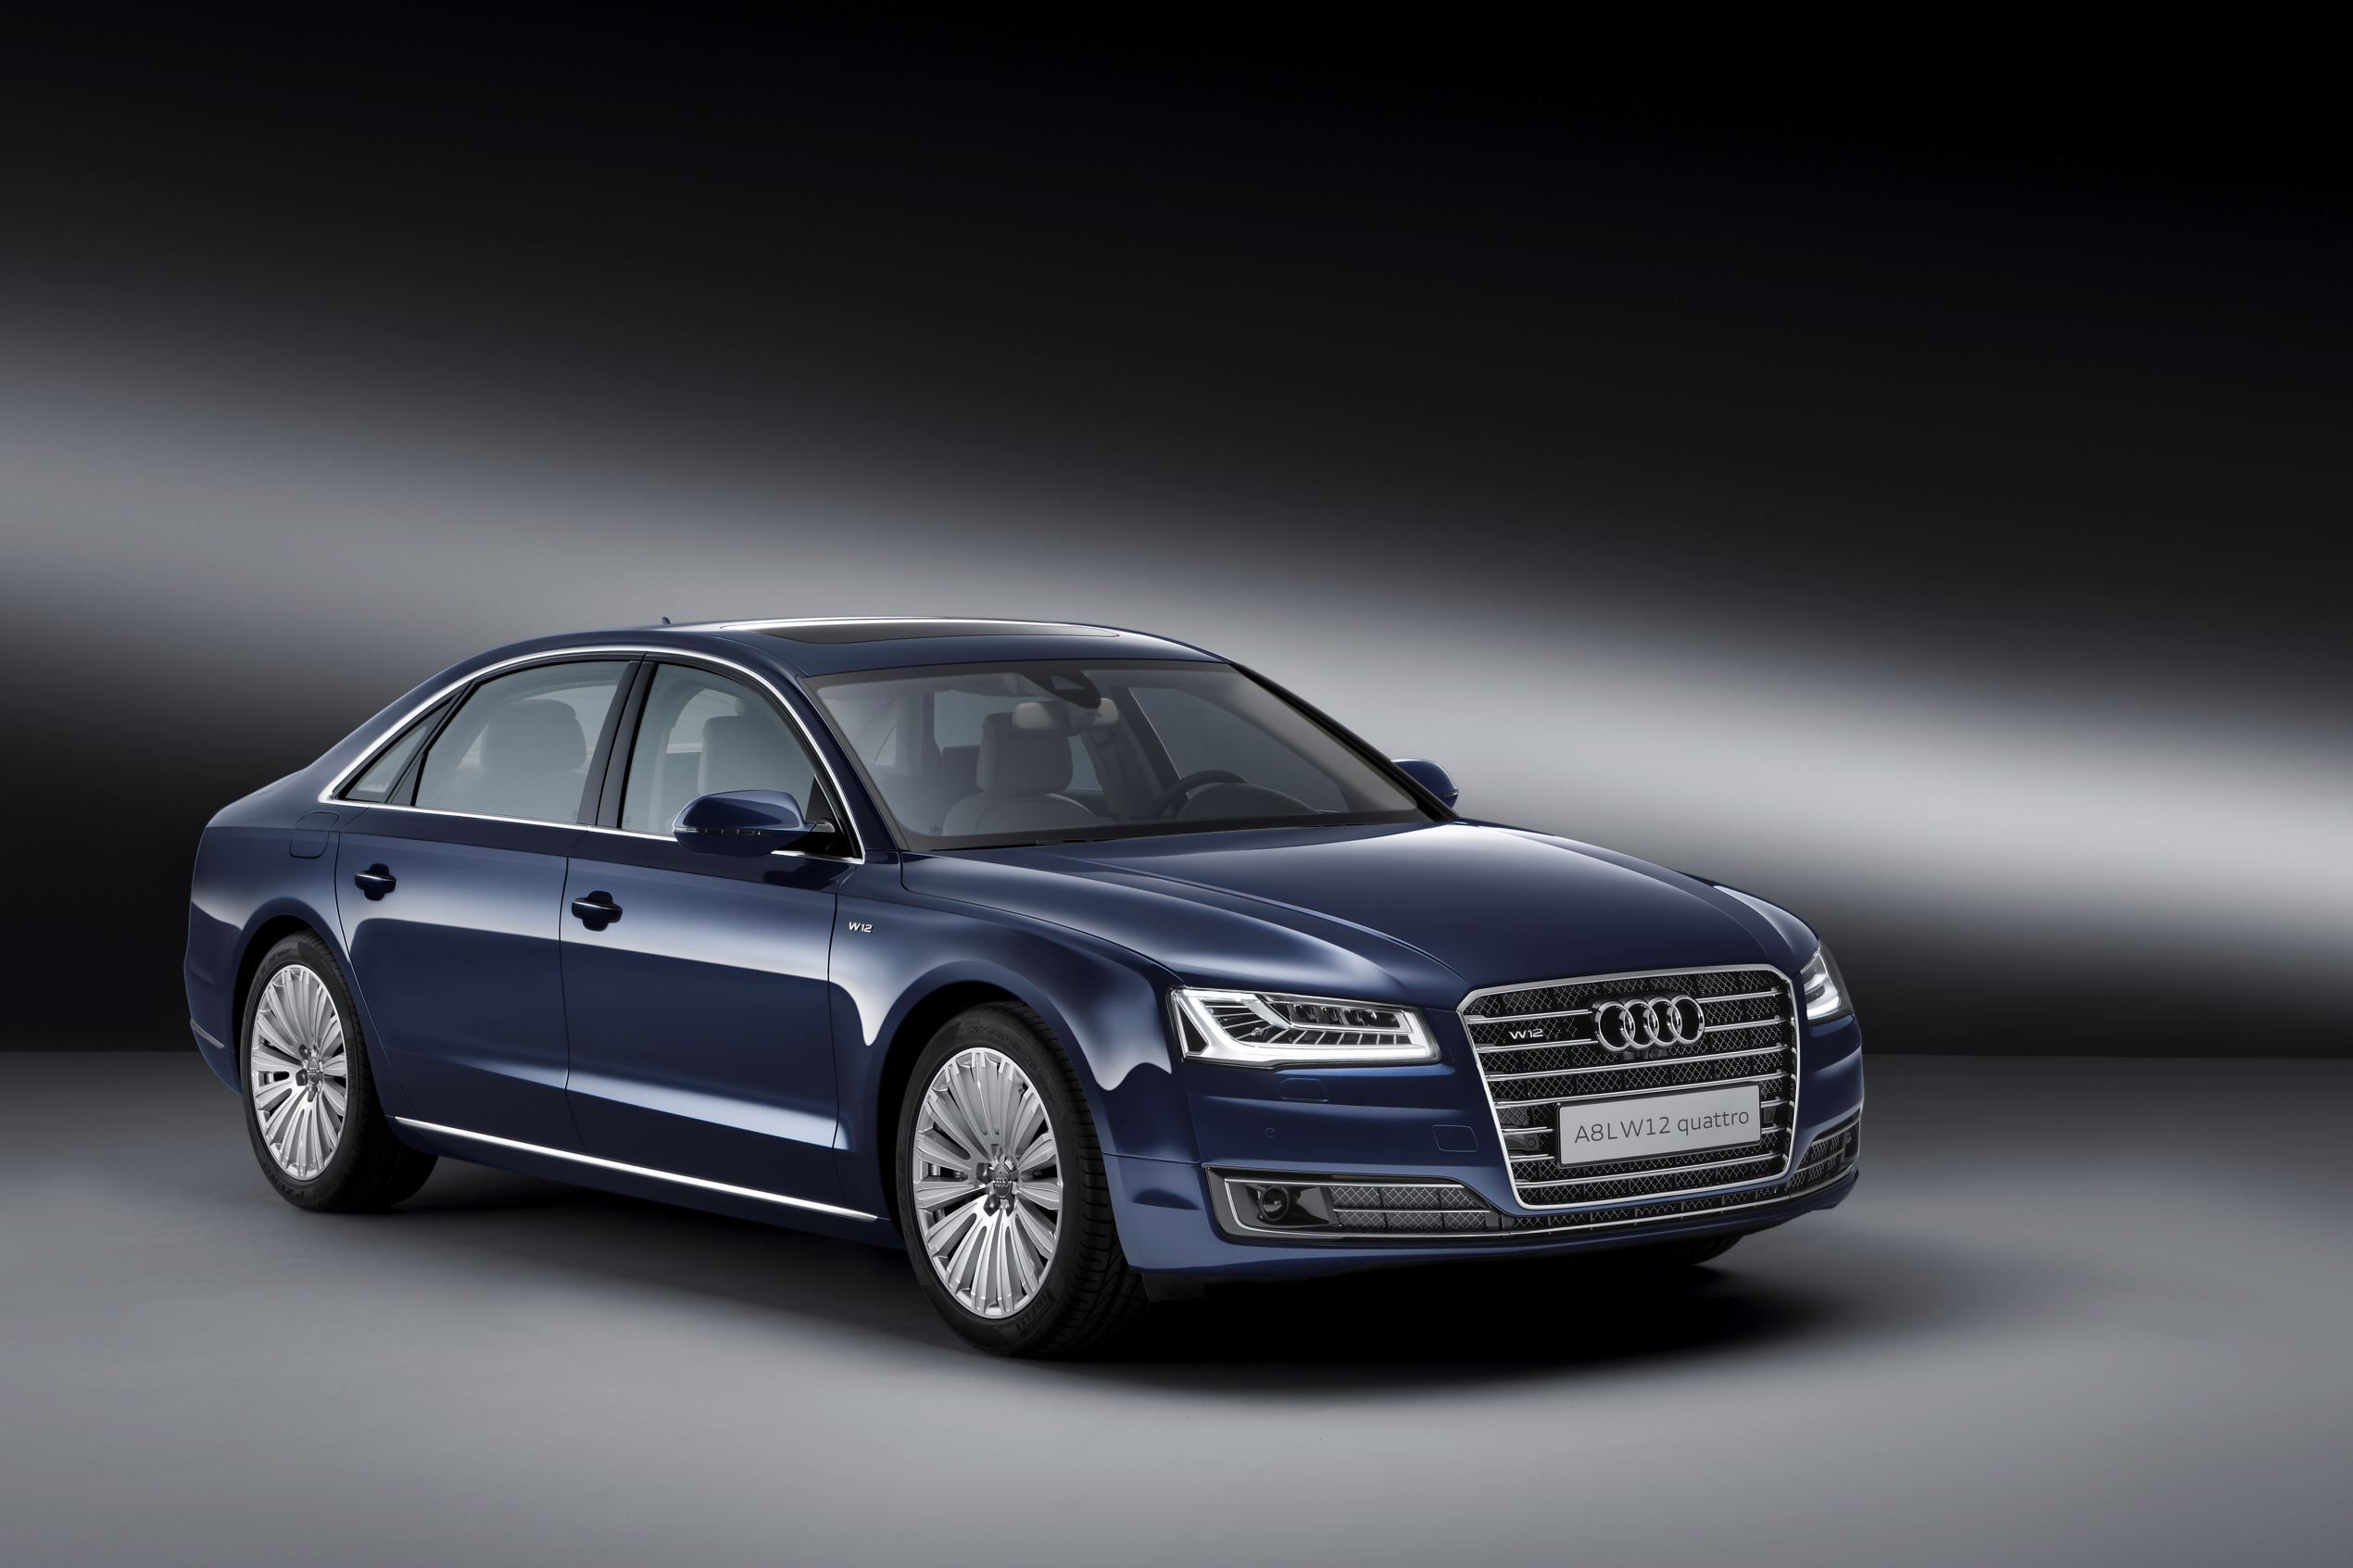 Cars With The Fastest Acceleration In Consumer Reports Tests Audi A8 Audi Sport Car Wallpaper